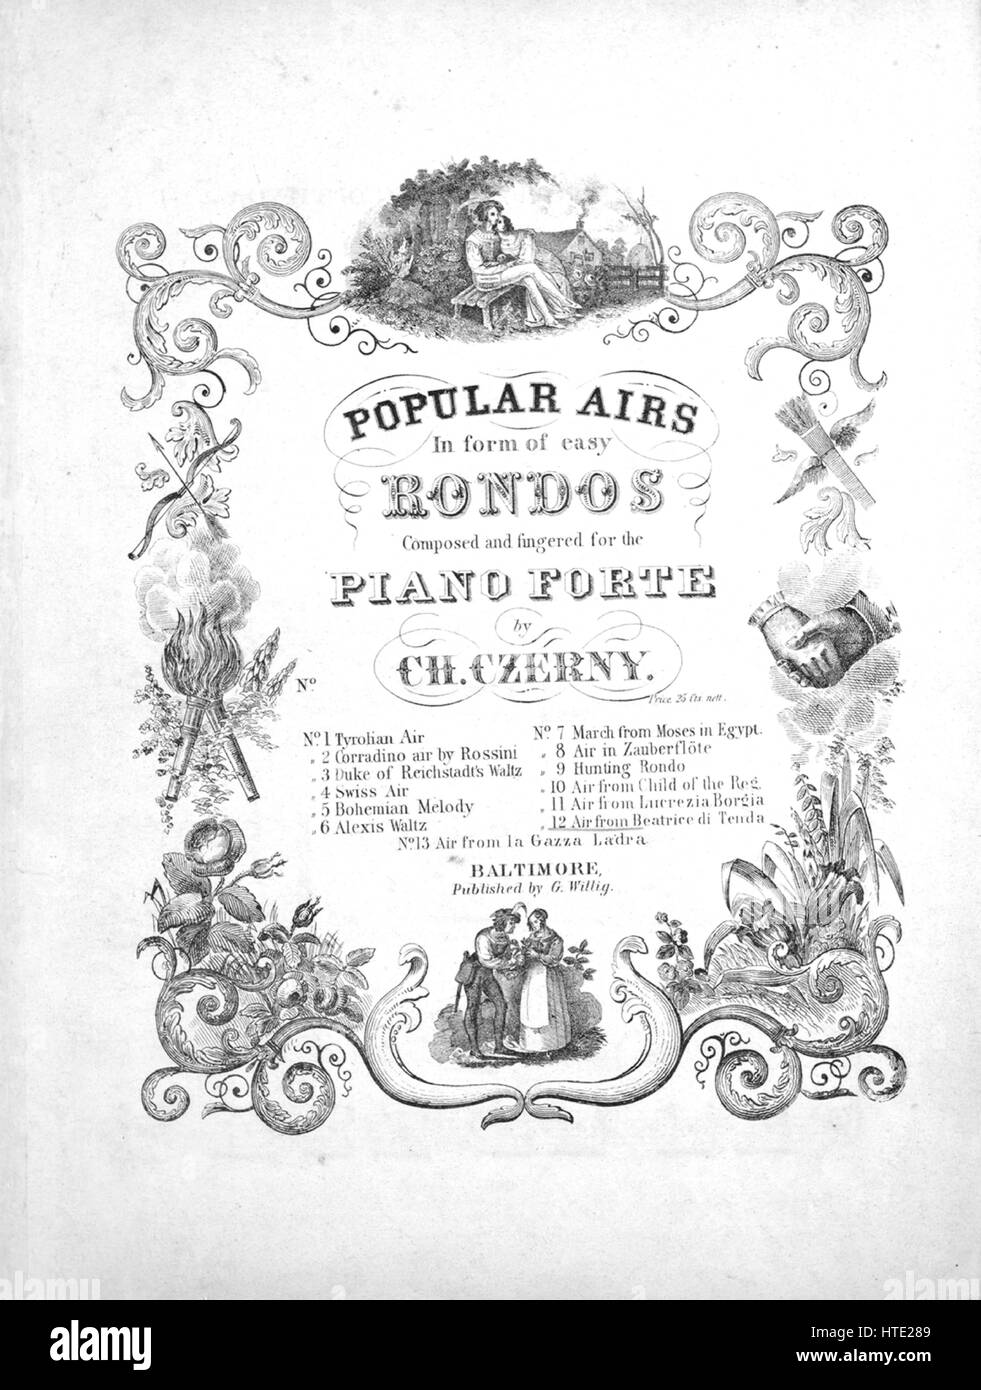 Sheet music cover image of the song 'Popular Airs In form of easy Rondos Air from Beatrice di Tenda', with - Stock Image